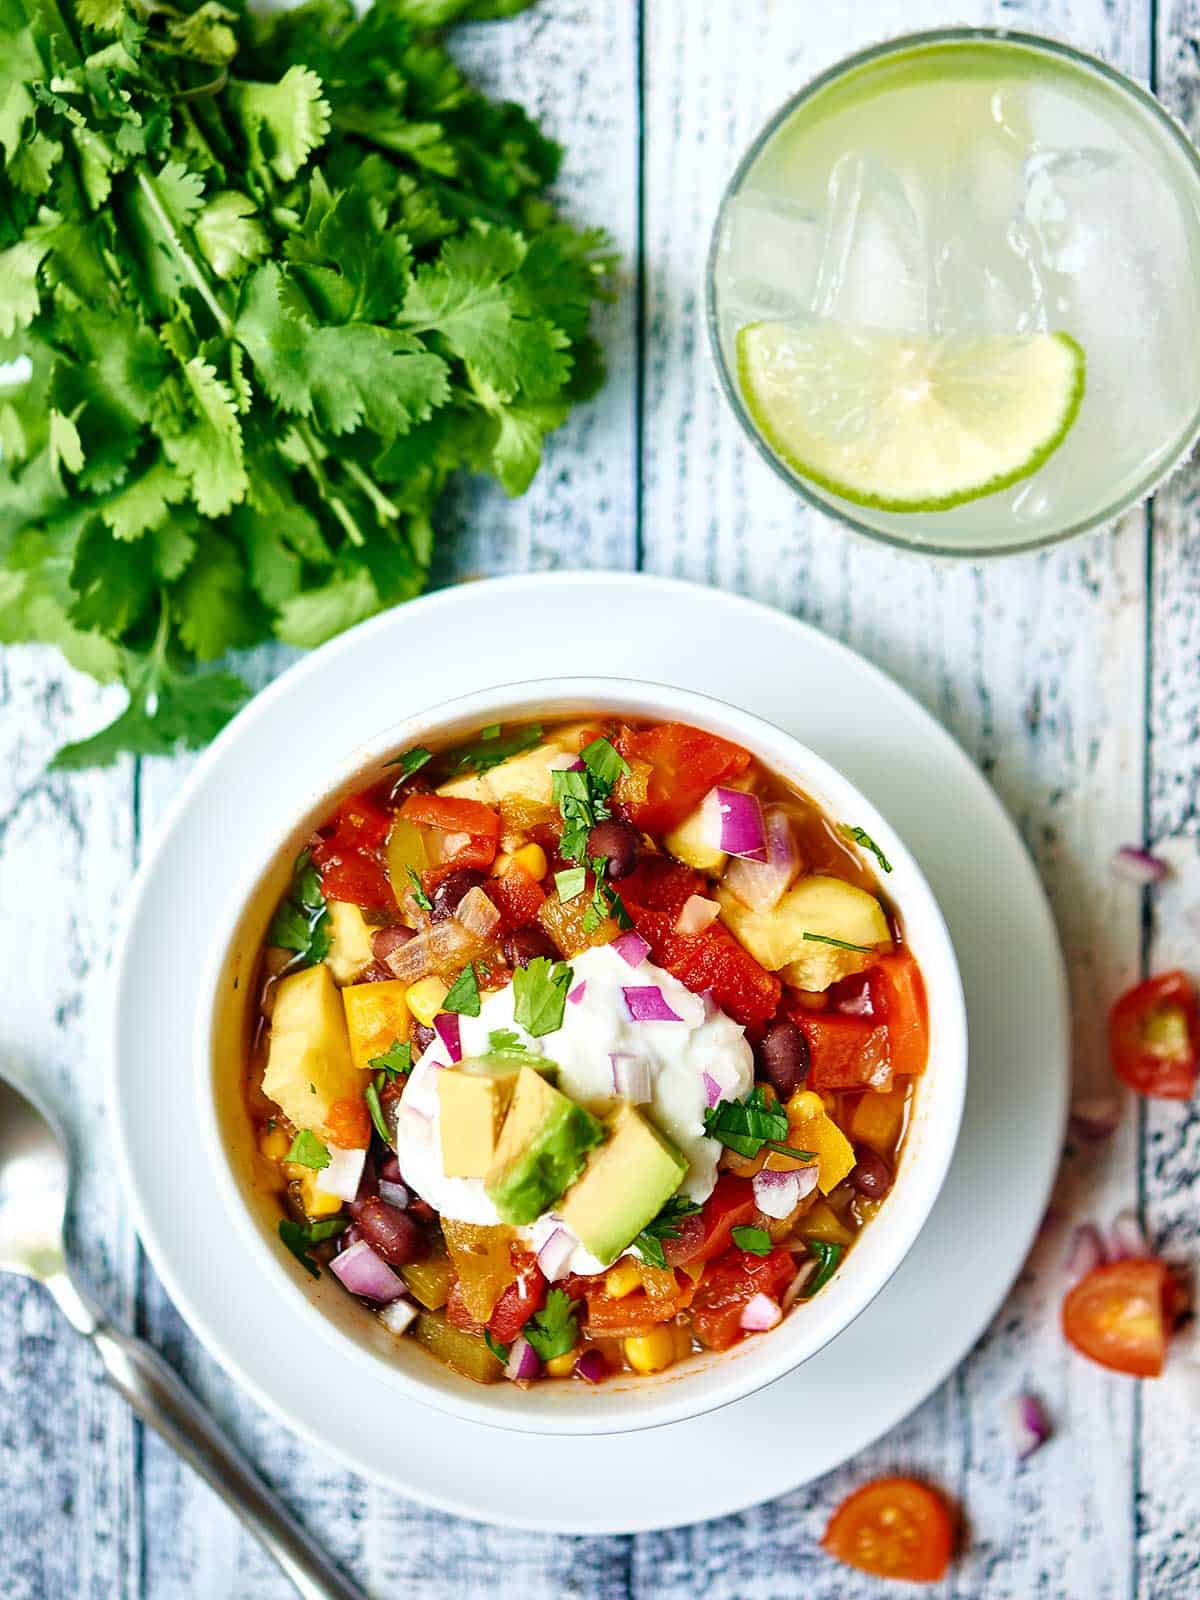 This Mexican Vegetable Soup is chock full of veggies, subtly spicy, and makes a ton! Make it today for Meatless Monday and enjoy it all week long! Less than 400 calories per serving! showmetheyummy.com #meatlessmonday #healthy #vegetarian #blackbeans #mexican #soup